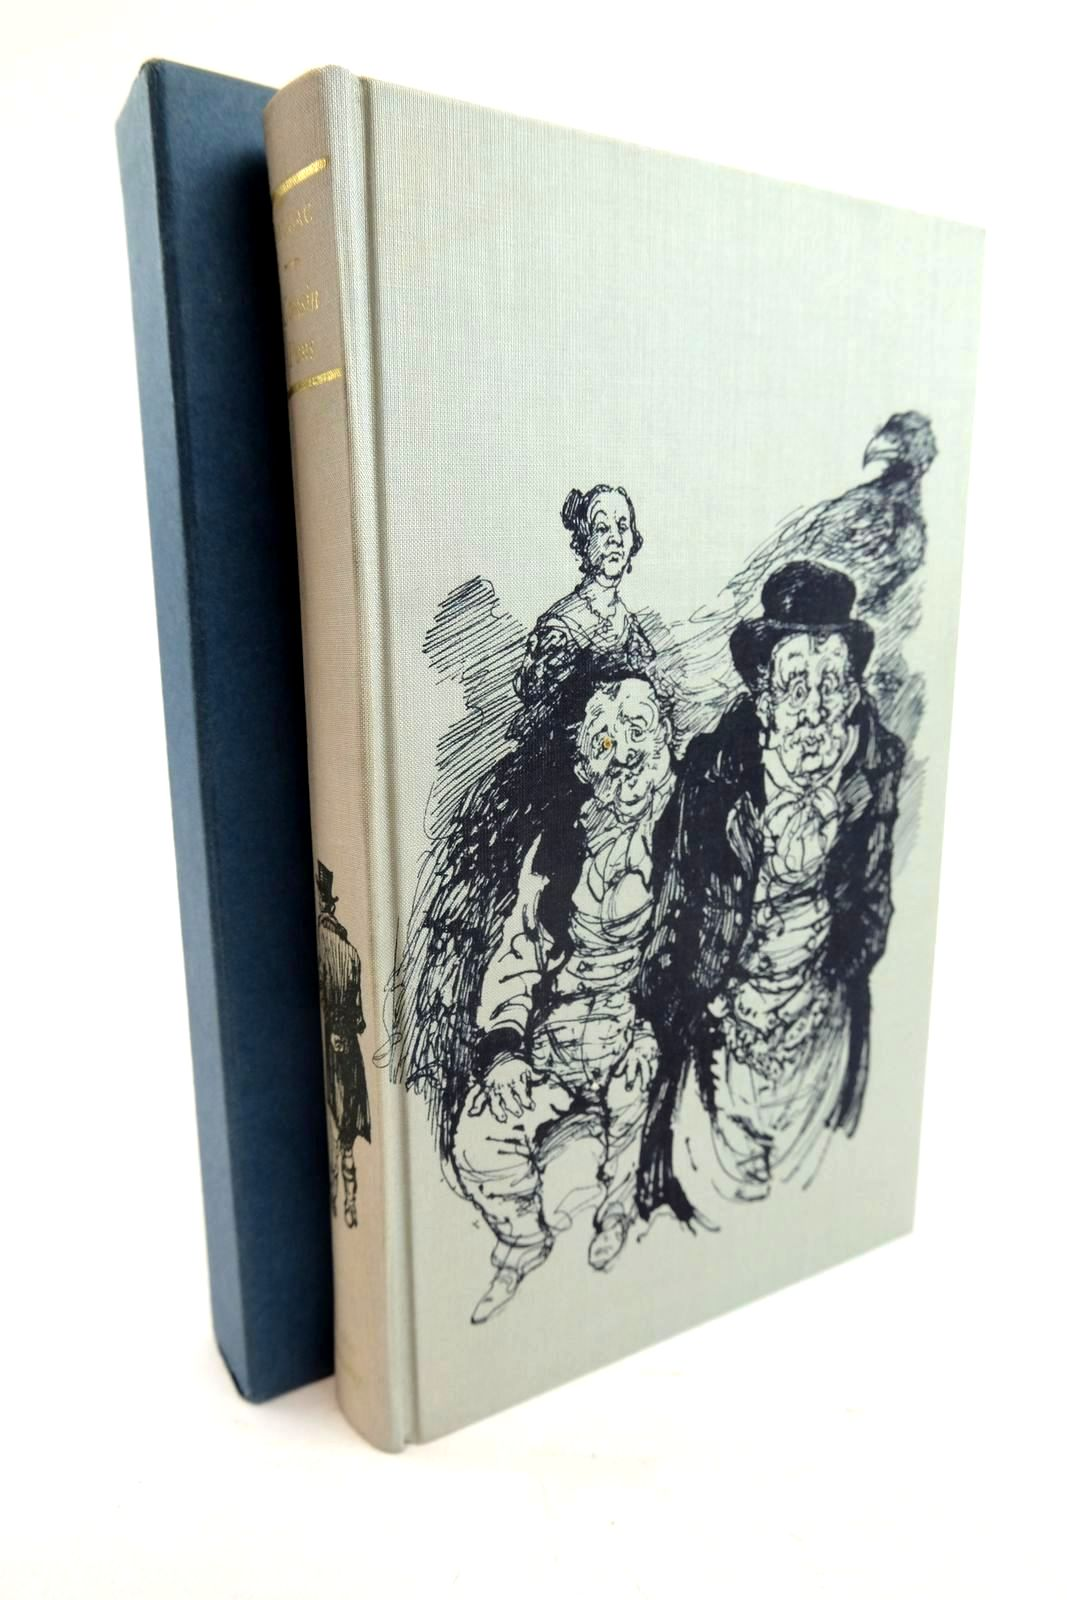 Photo of COUSIN PONS written by De Balzac, Honore Hunt, Herbert J. illustrated by Hughes, Shirley published by Folio Society (STOCK CODE: 1319877)  for sale by Stella & Rose's Books